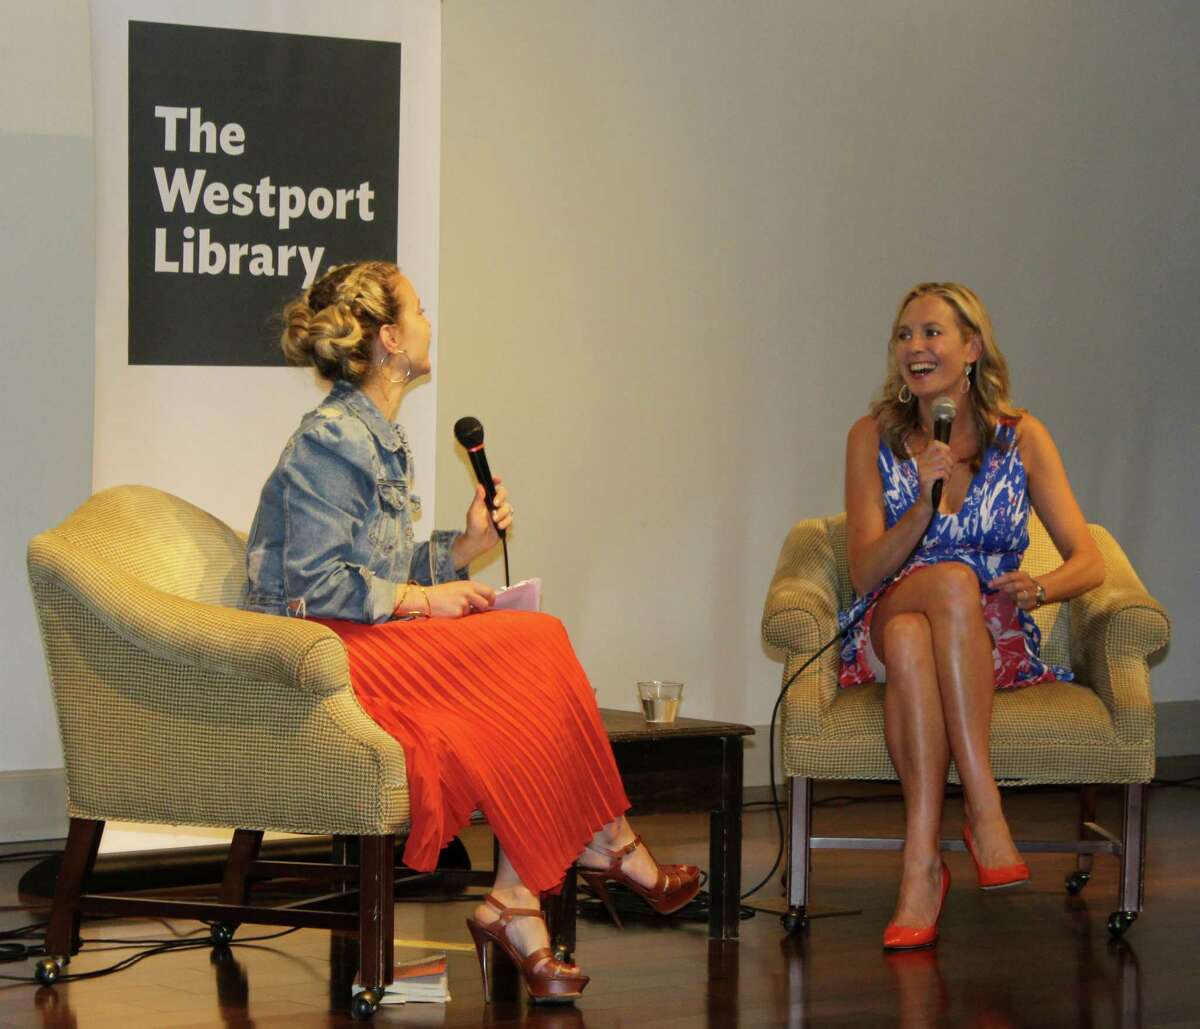 Westport resident and TV style icon Jenn Falik hosted a conversation with fellow town resident, author Lauren Weisberger, about her new bookm,